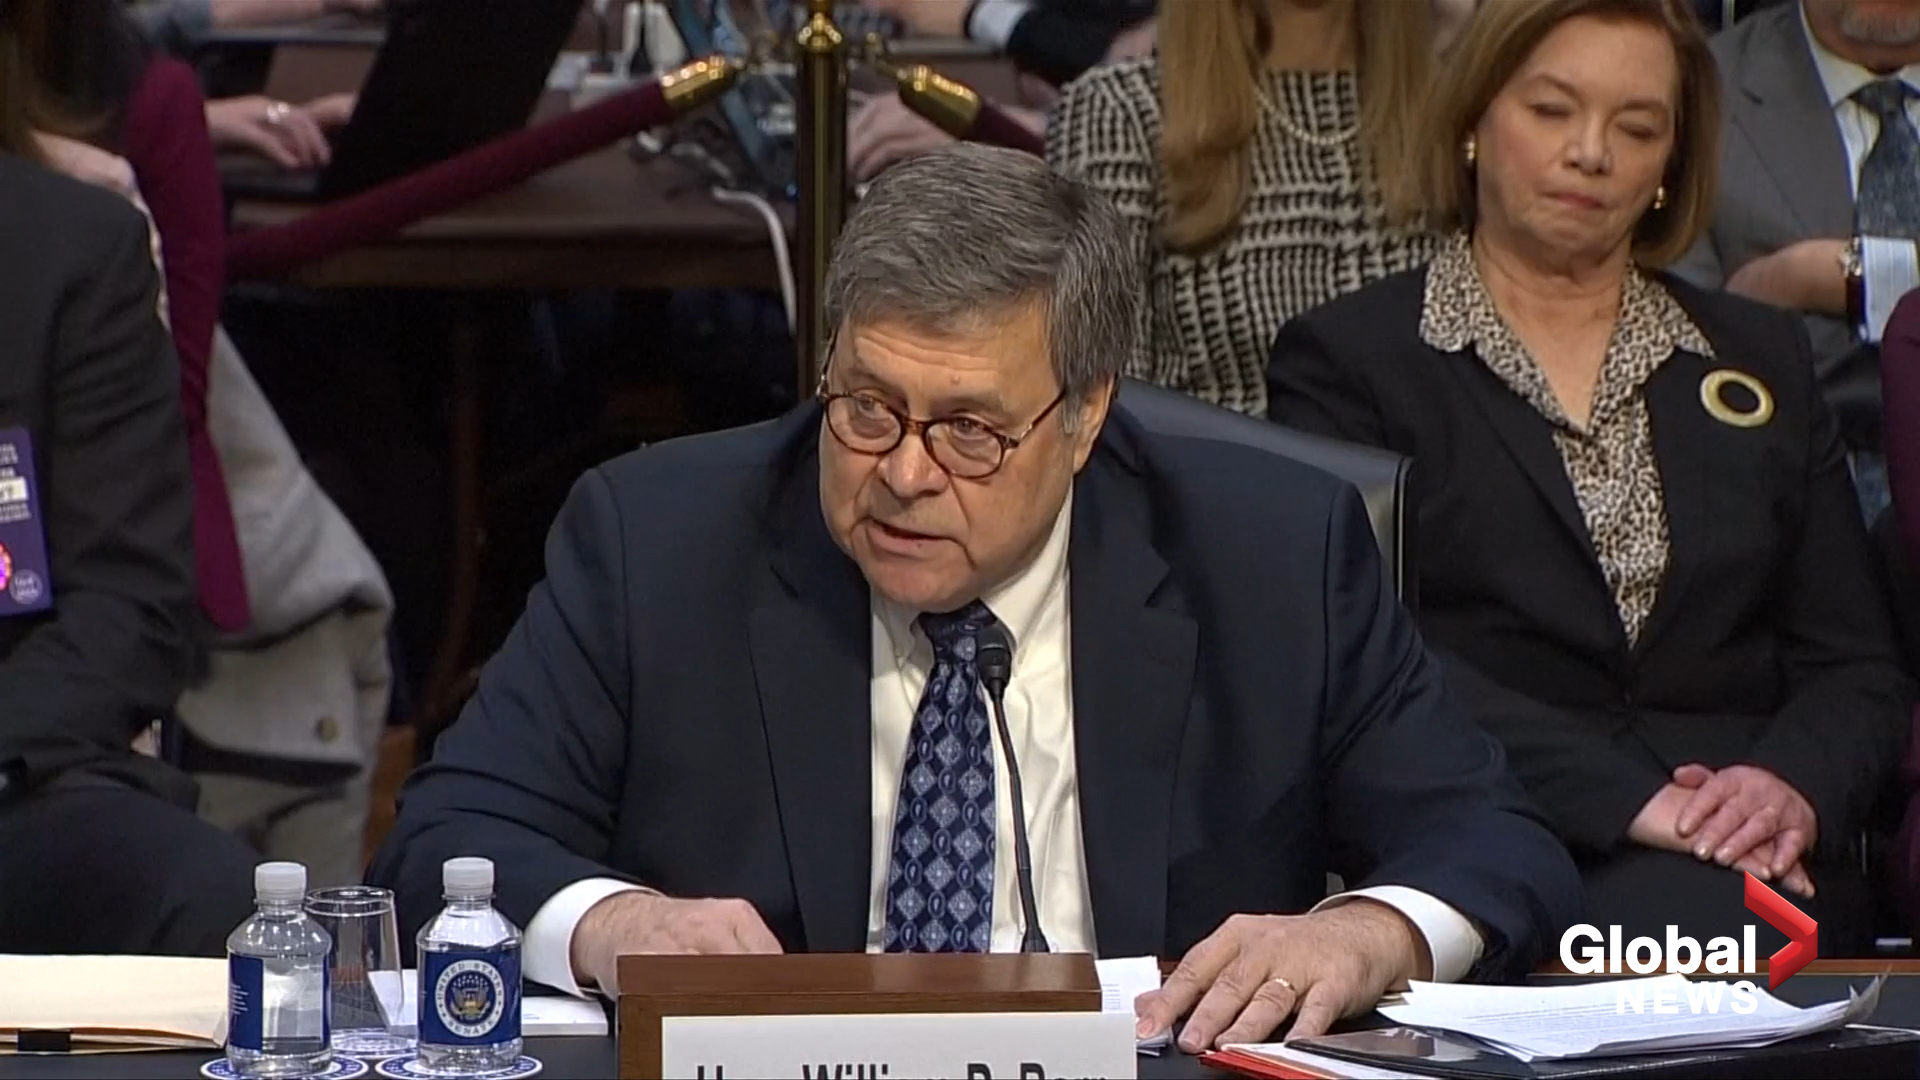 Barr returns to Capitol Hill, where he'll face more Mueller questions